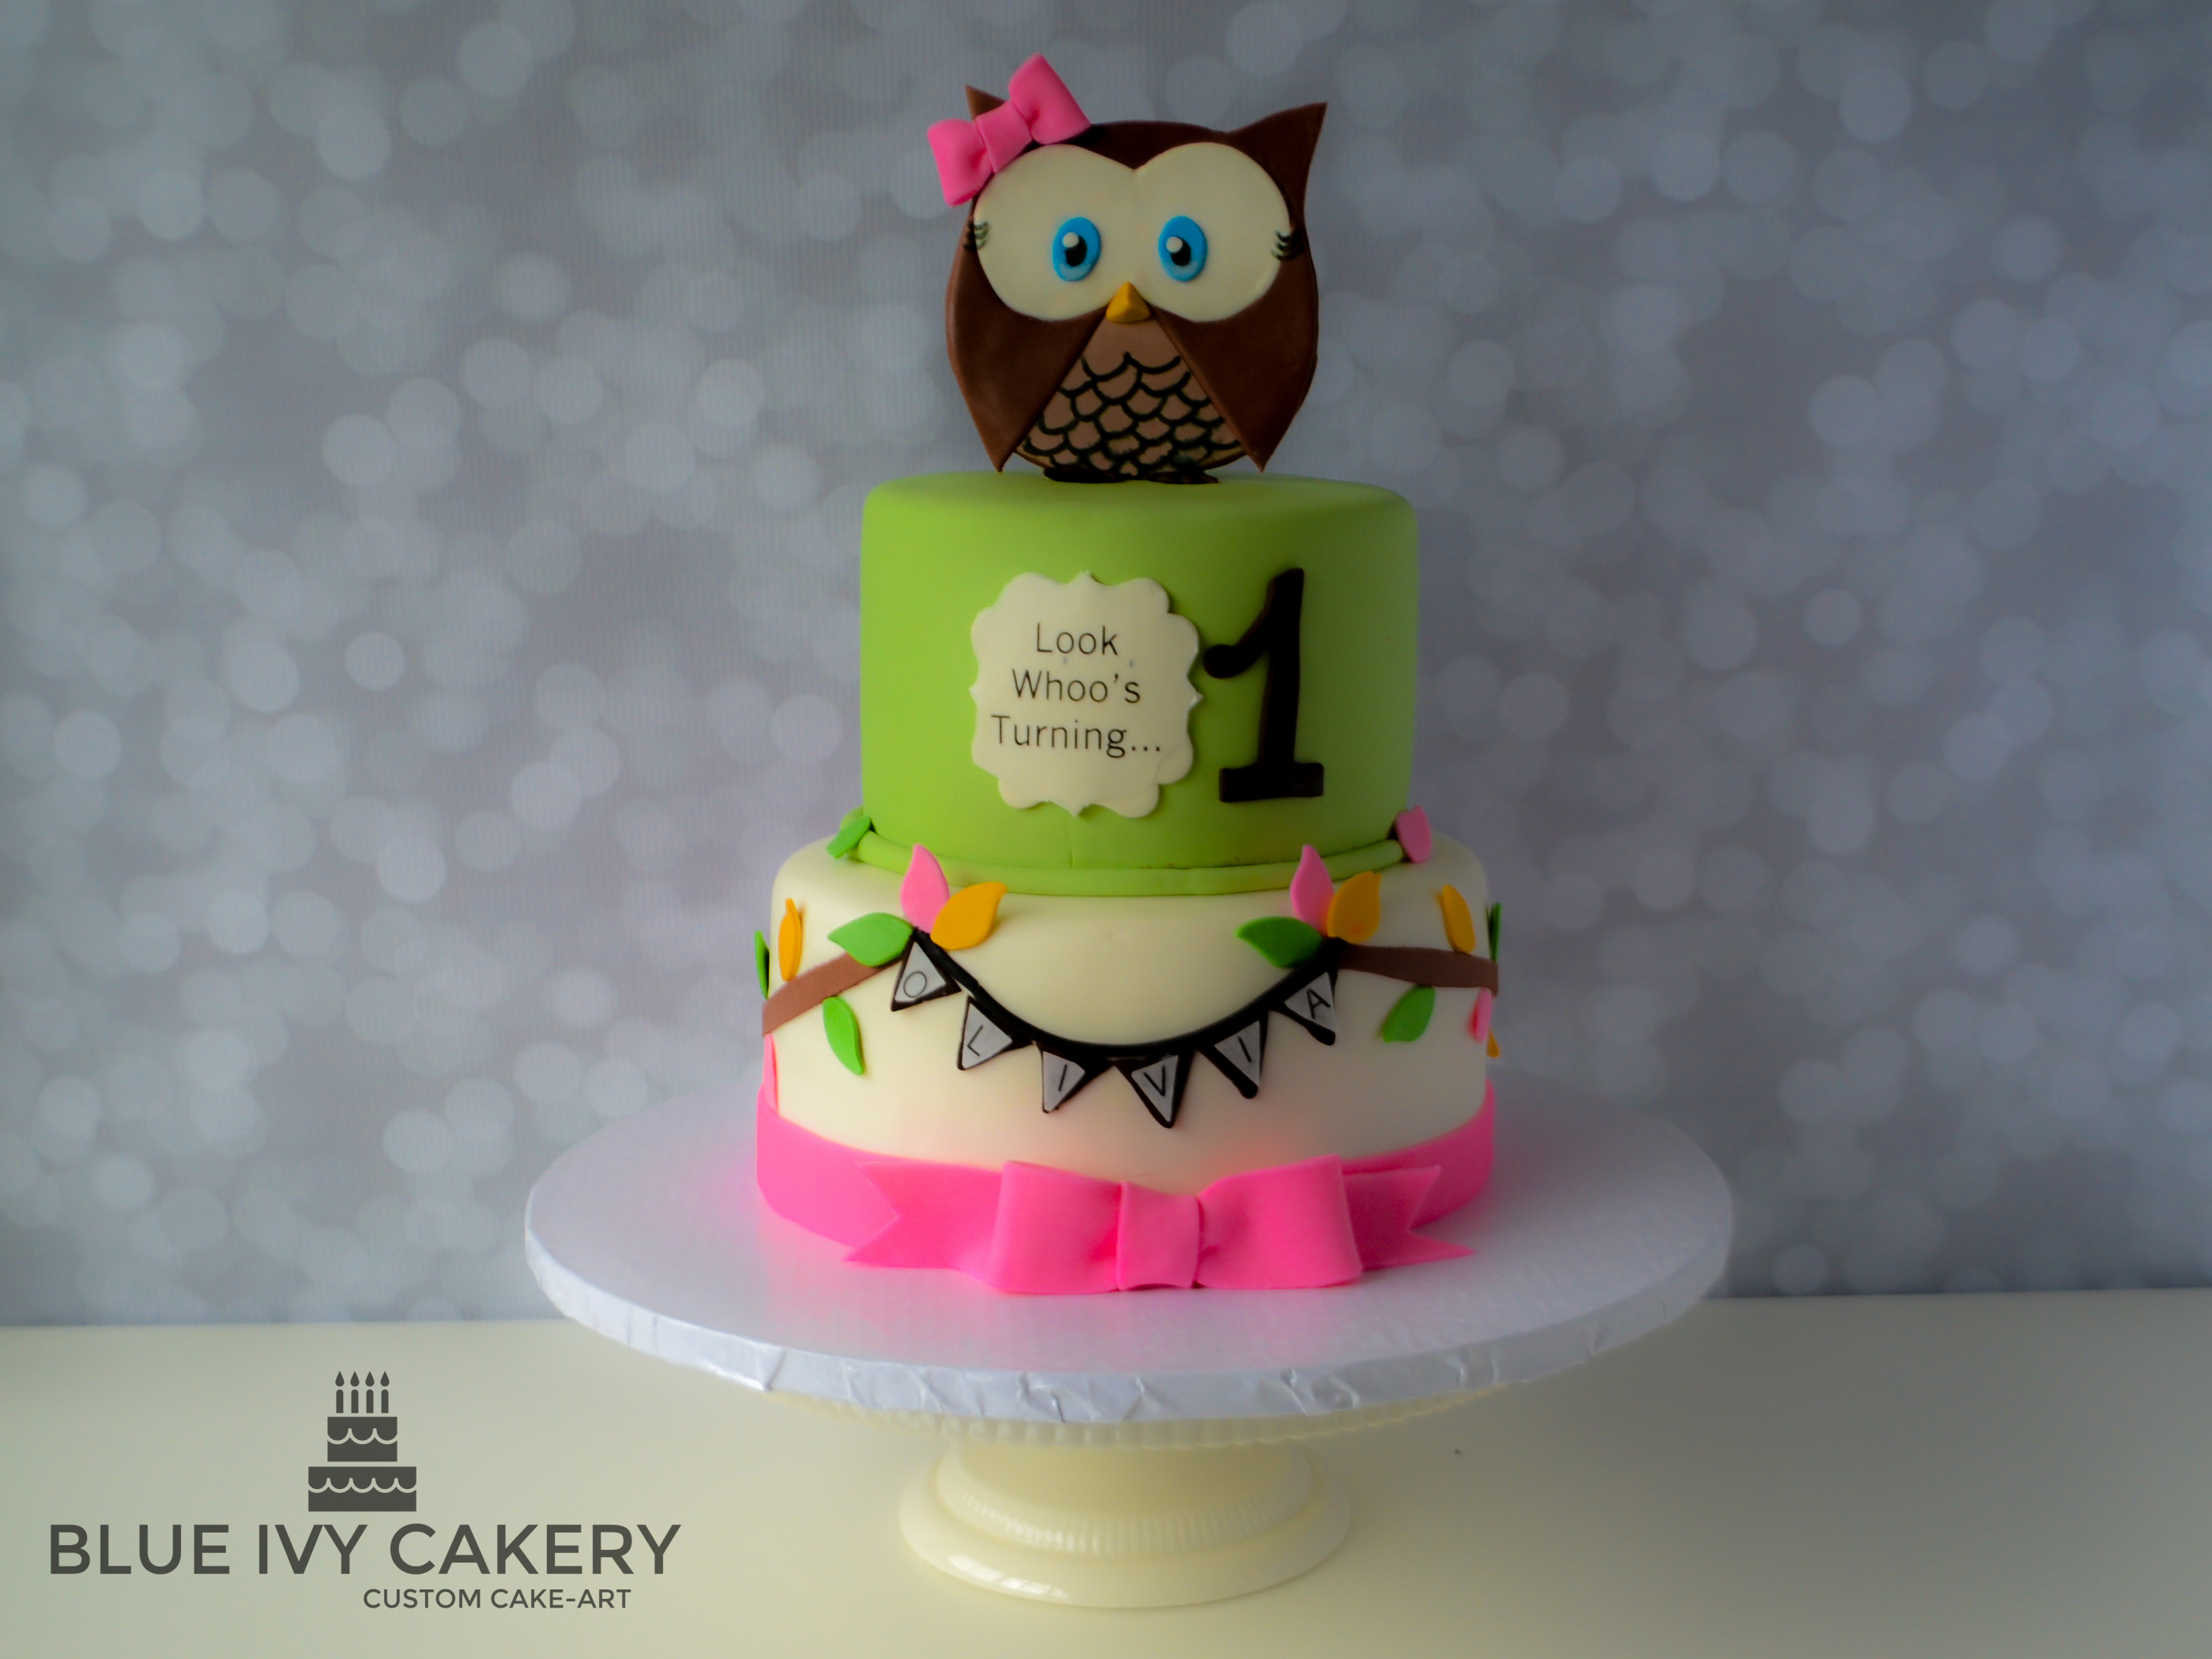 Incredible Look Whoos Ordering Again Owl Theme Birthday Cake Blue Ivy Cakery Personalised Birthday Cards Veneteletsinfo